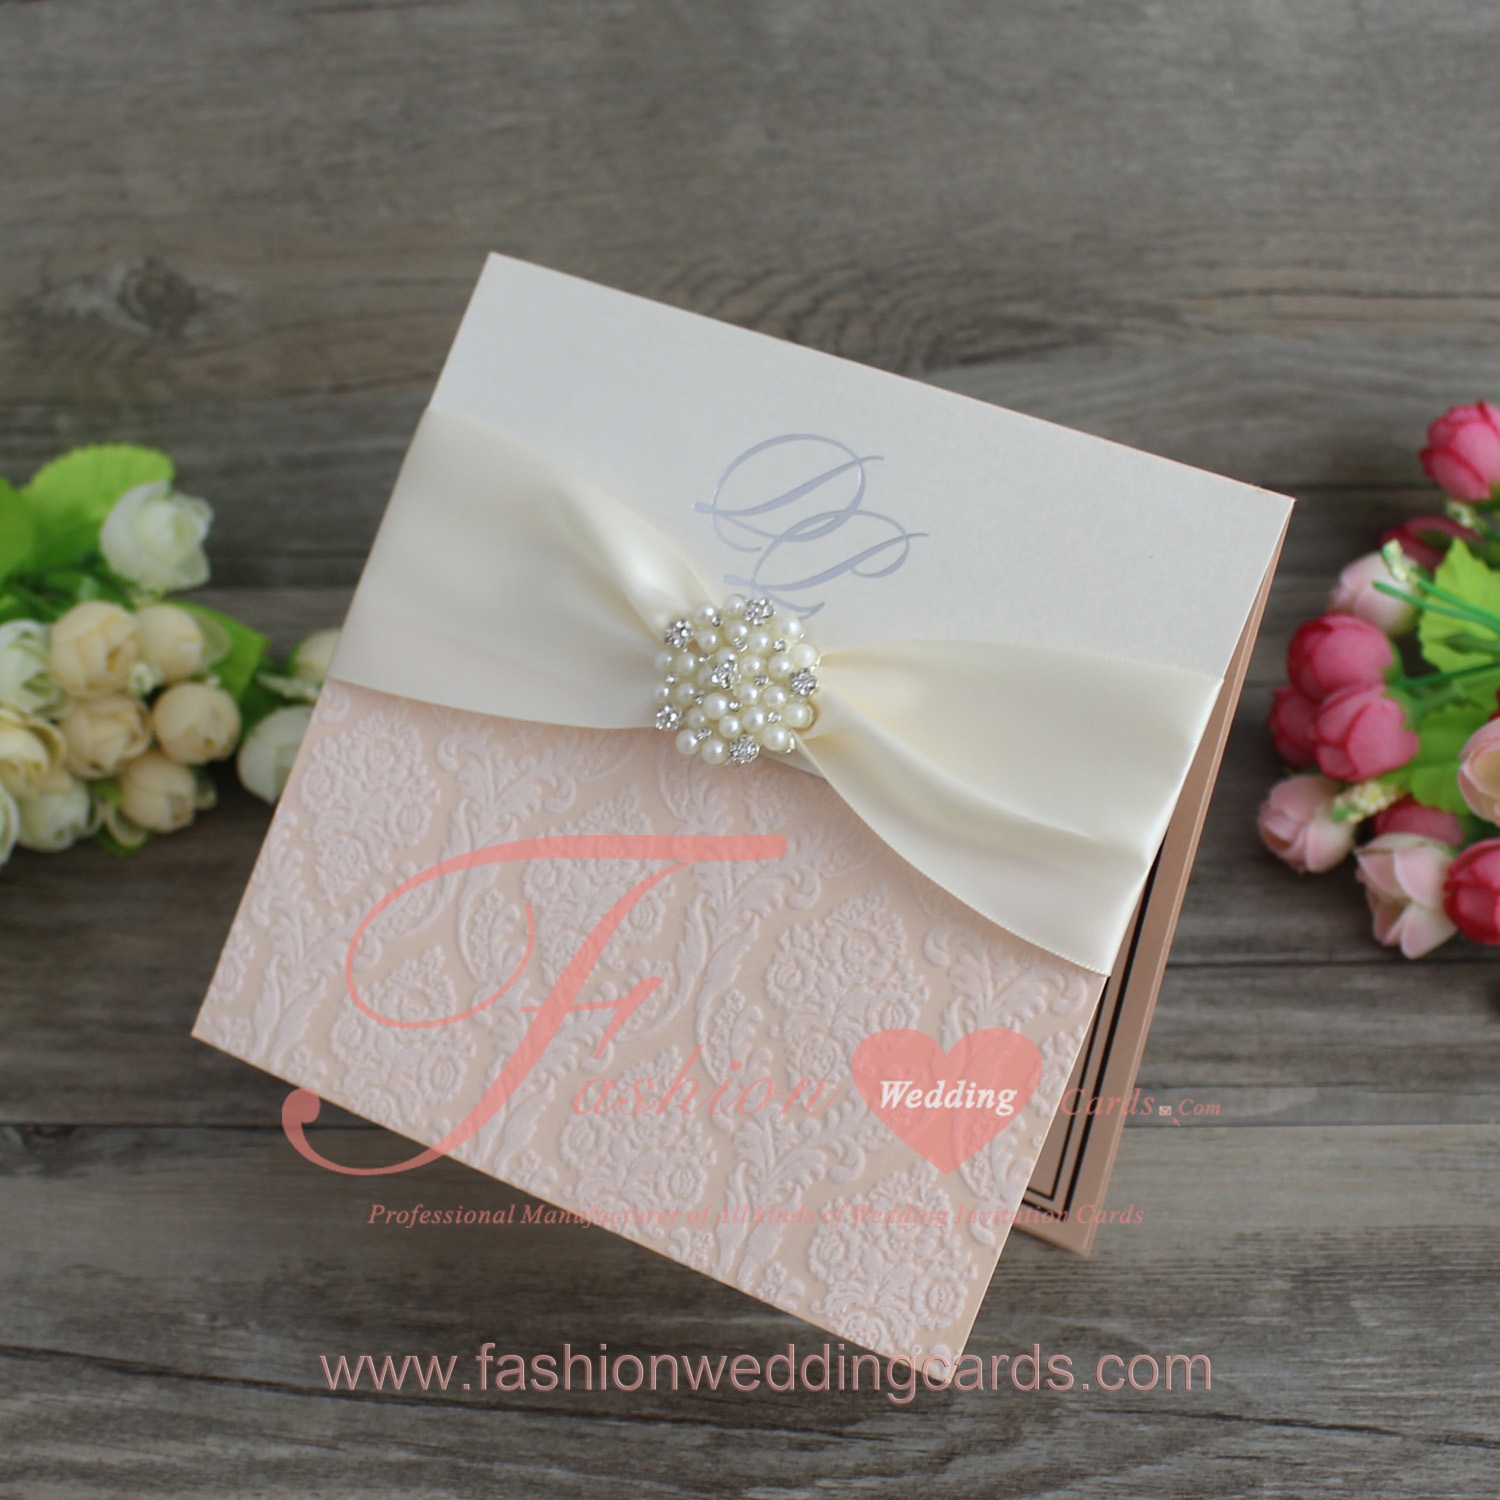 Order Printed Invitations Online